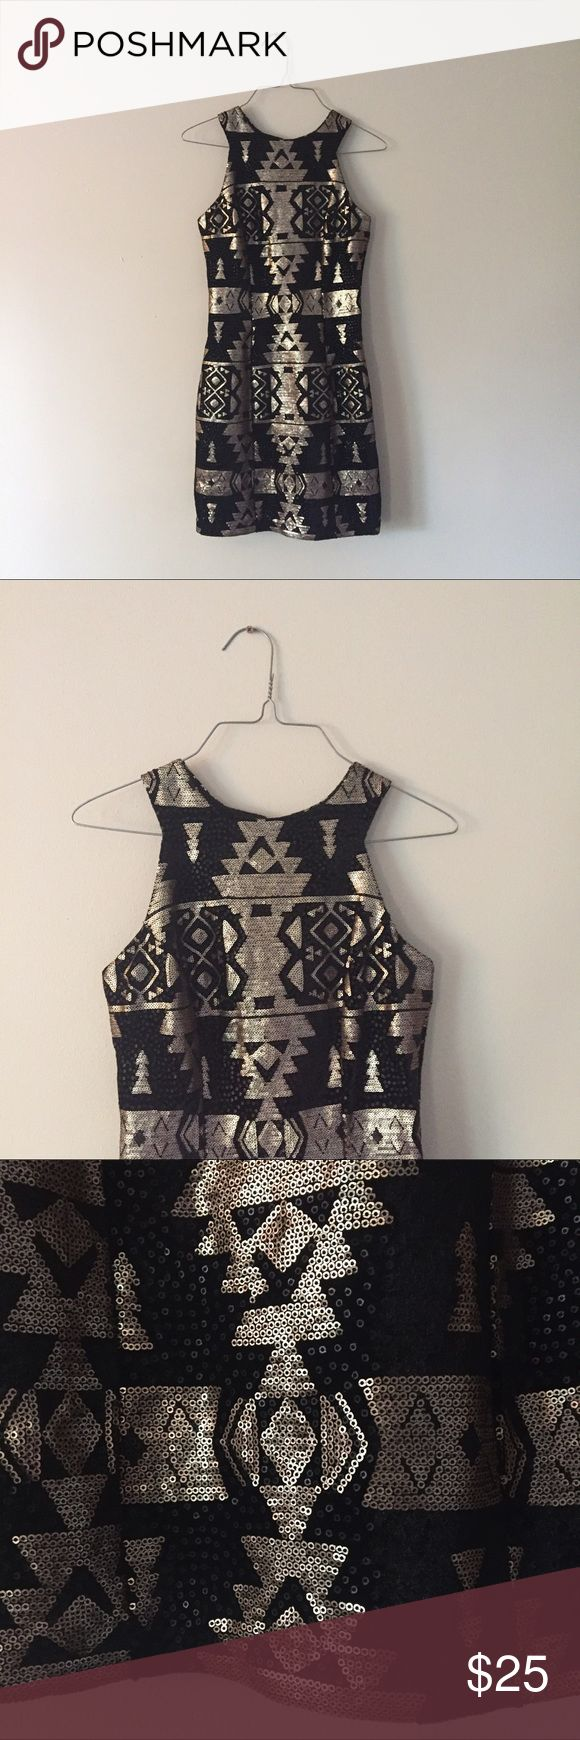 Beautiful aztec sequence high neck body con dress Beautiful and like new black and gold sequin aztec print high neck body con dress. Worn once to a work Christmas party, in perfect condition! Pair with your favorite heels for a girls night out or a date night with that special  someone Trixxi Dresses Mini